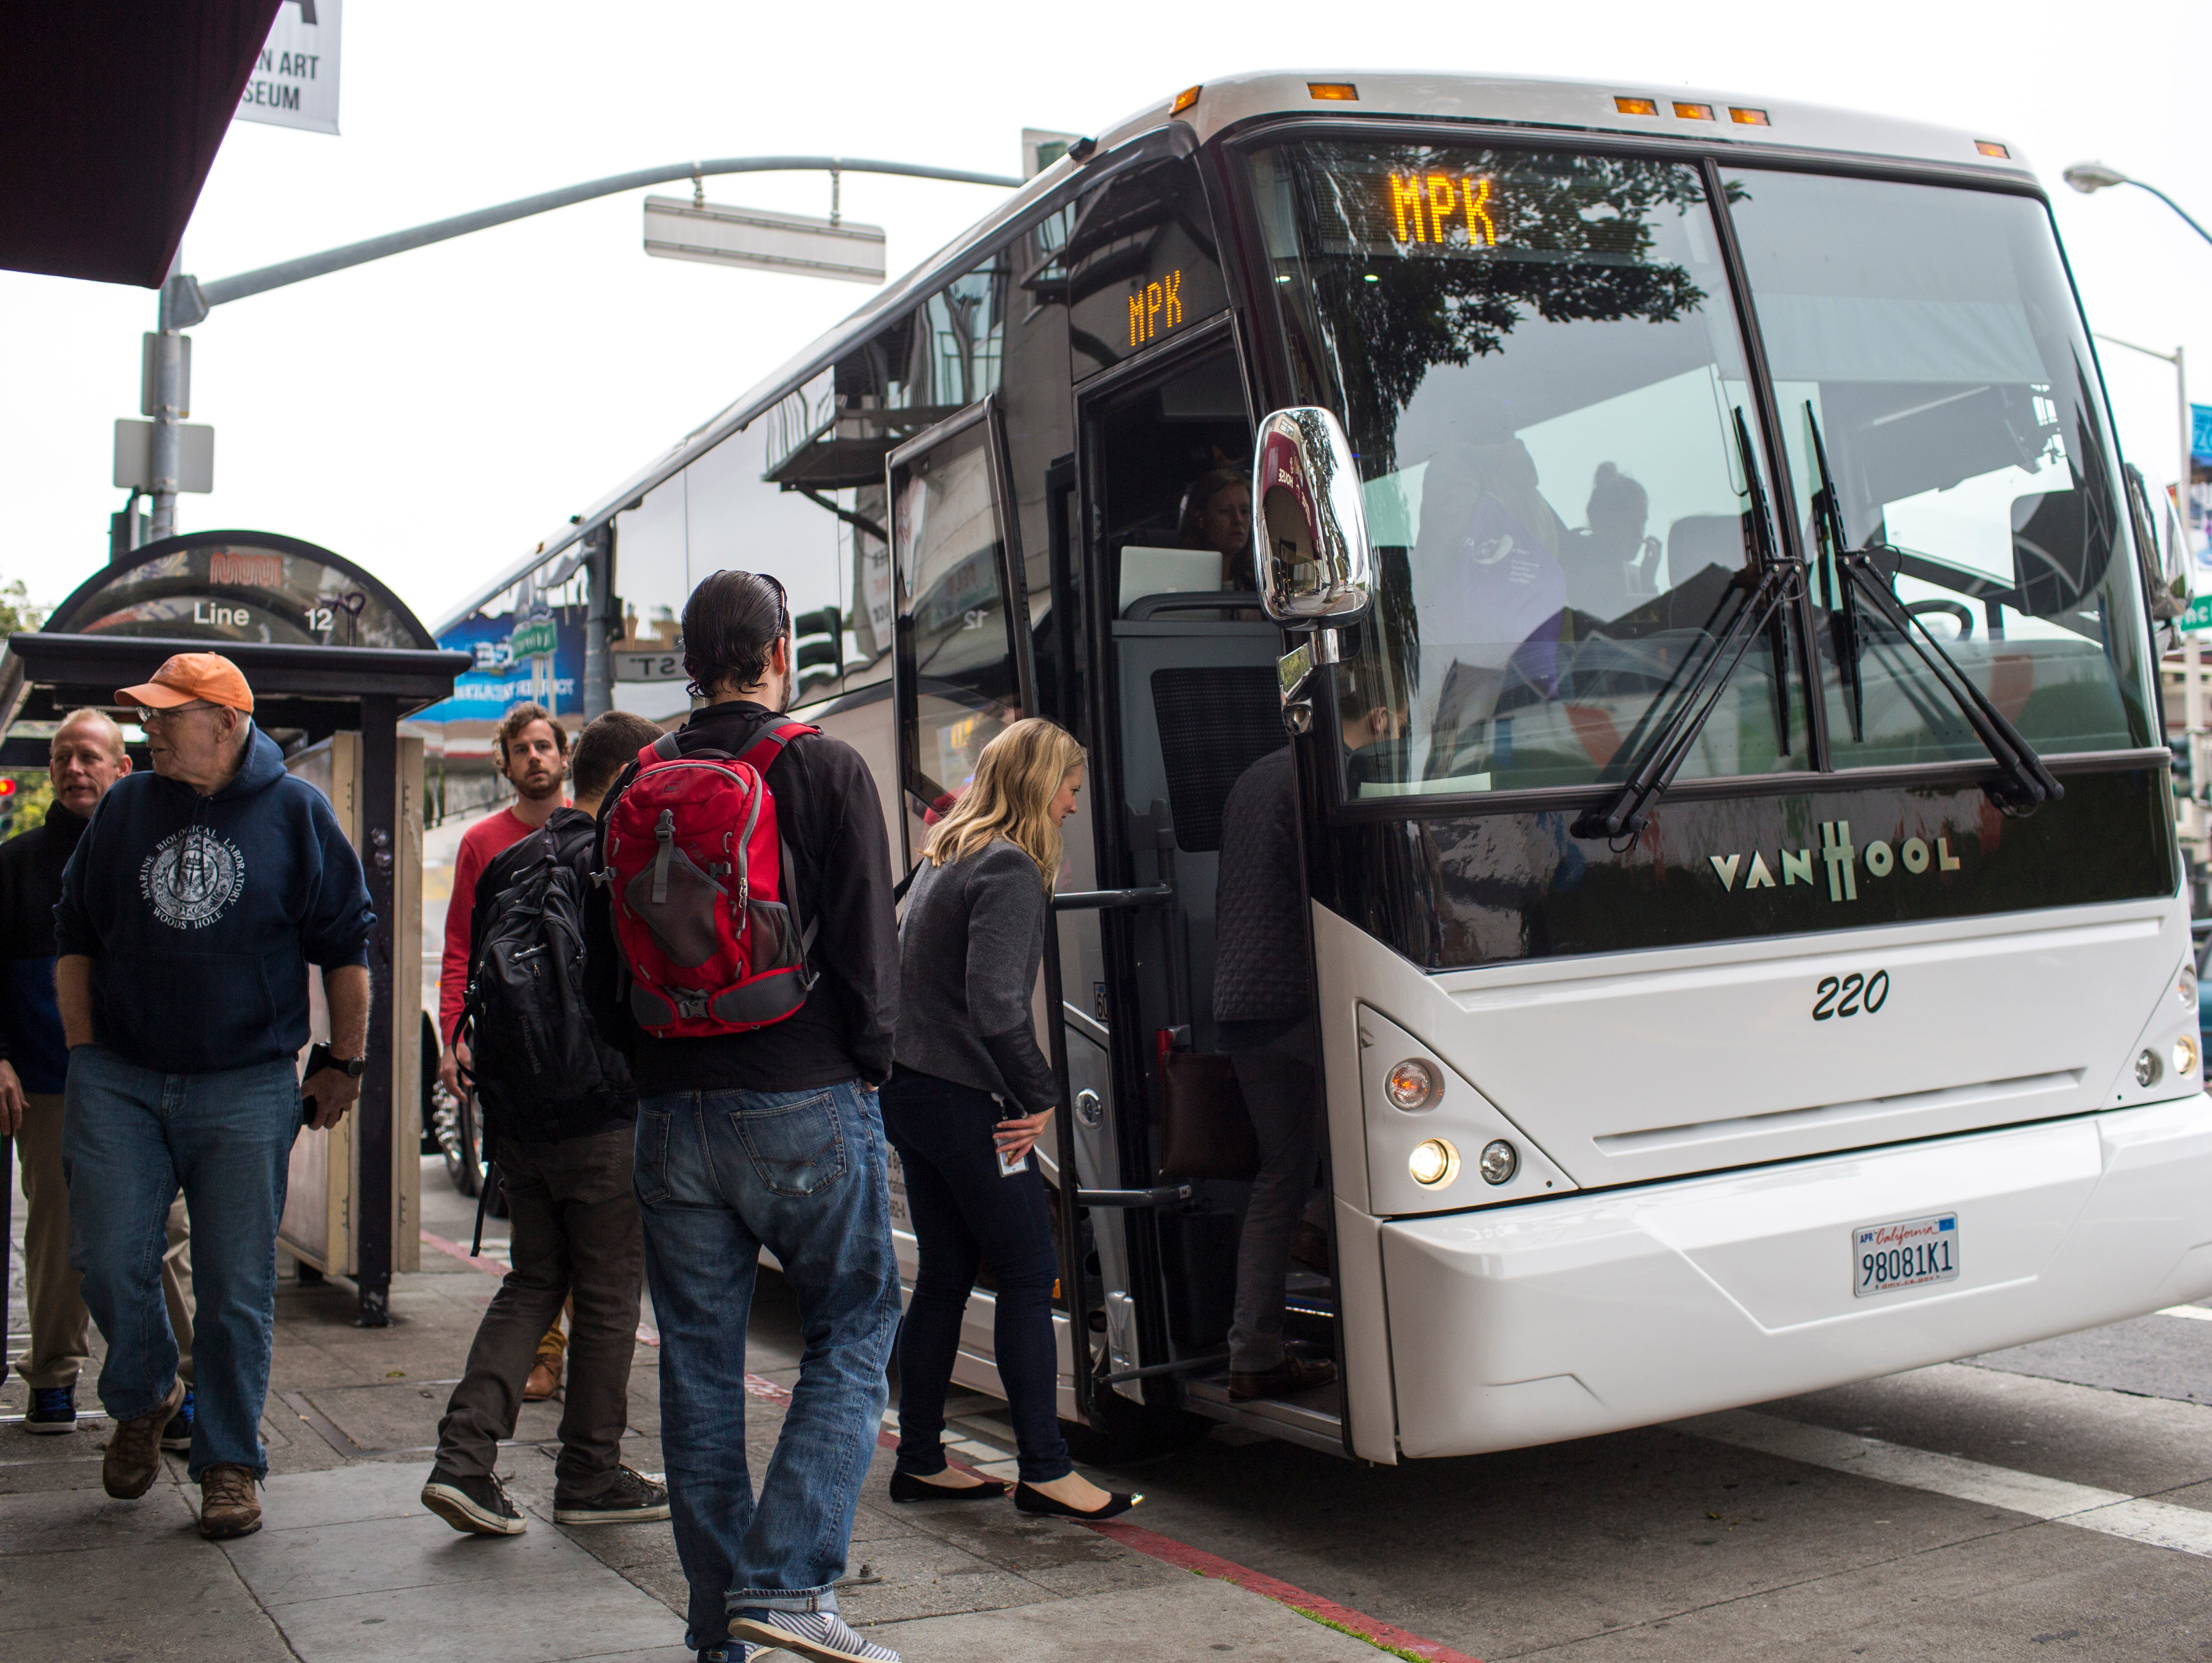 Software engineers, designers and IT employees of technology companies board shuttle buses to Silicon Valley on April 14, 2014, in the Mission District of San Francisco. Approximately 35,000 employees use shuttle buses each day to be dropped off at G